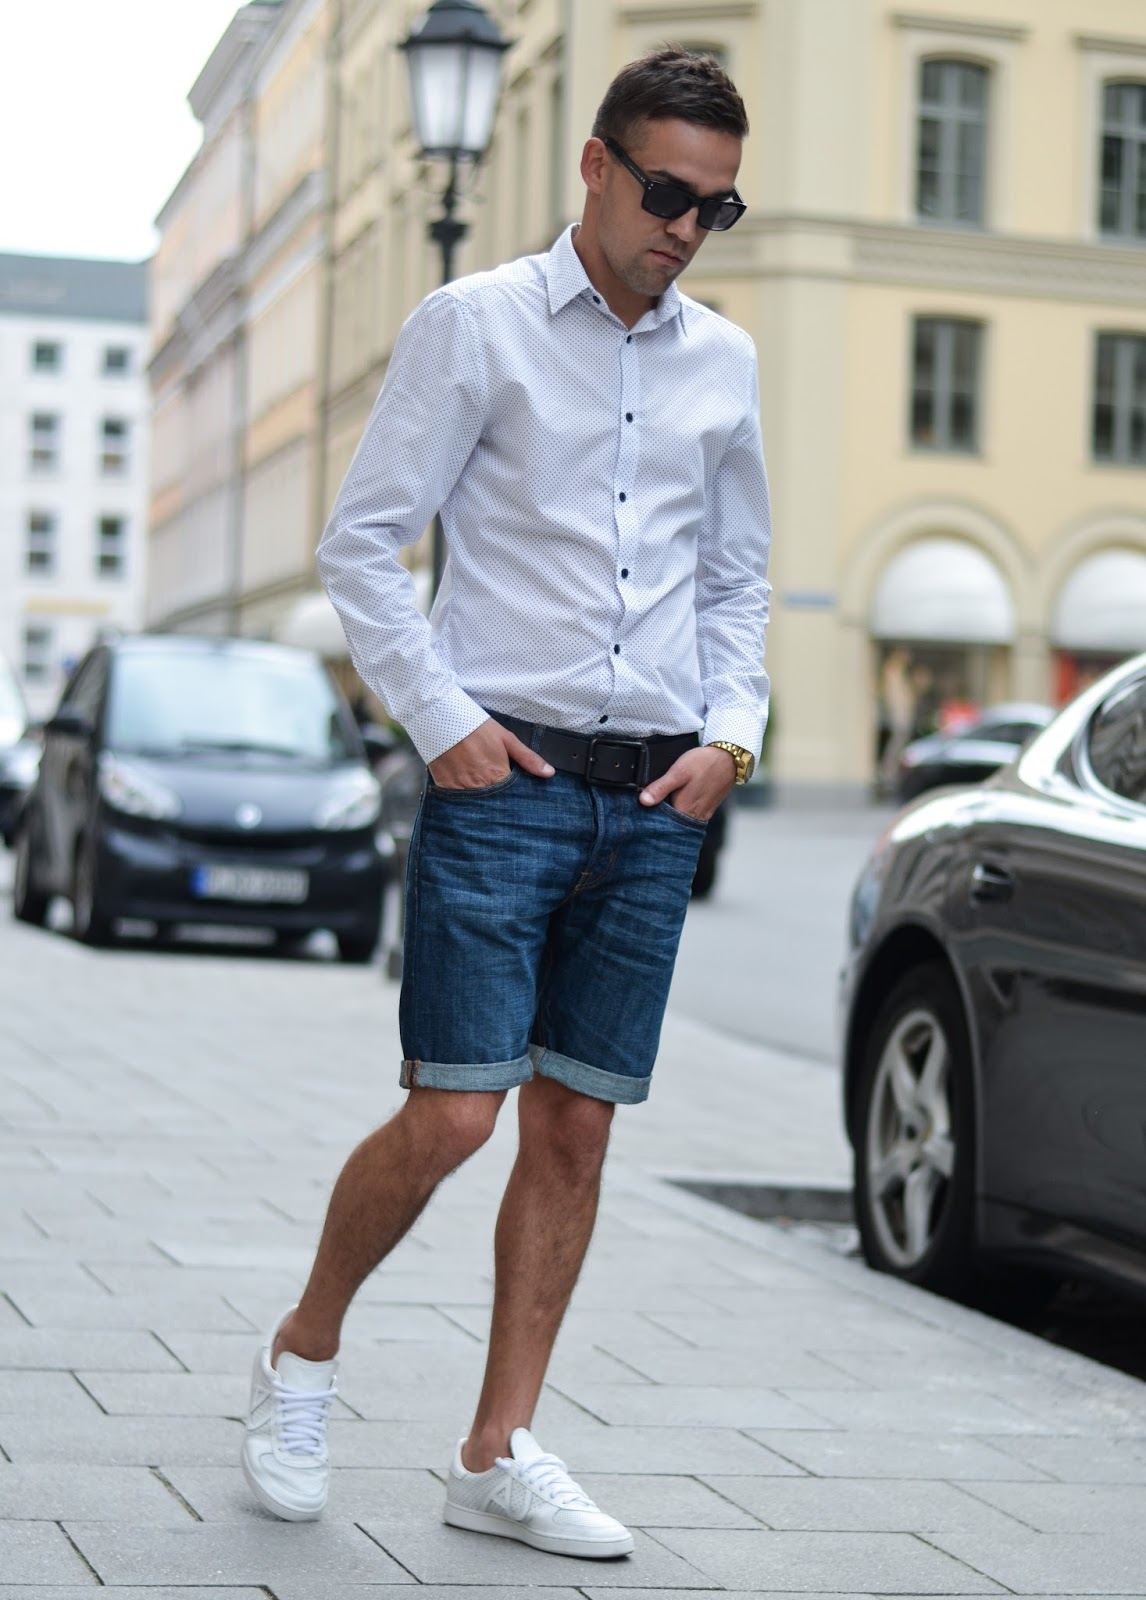 richard mere munich men street style outfit